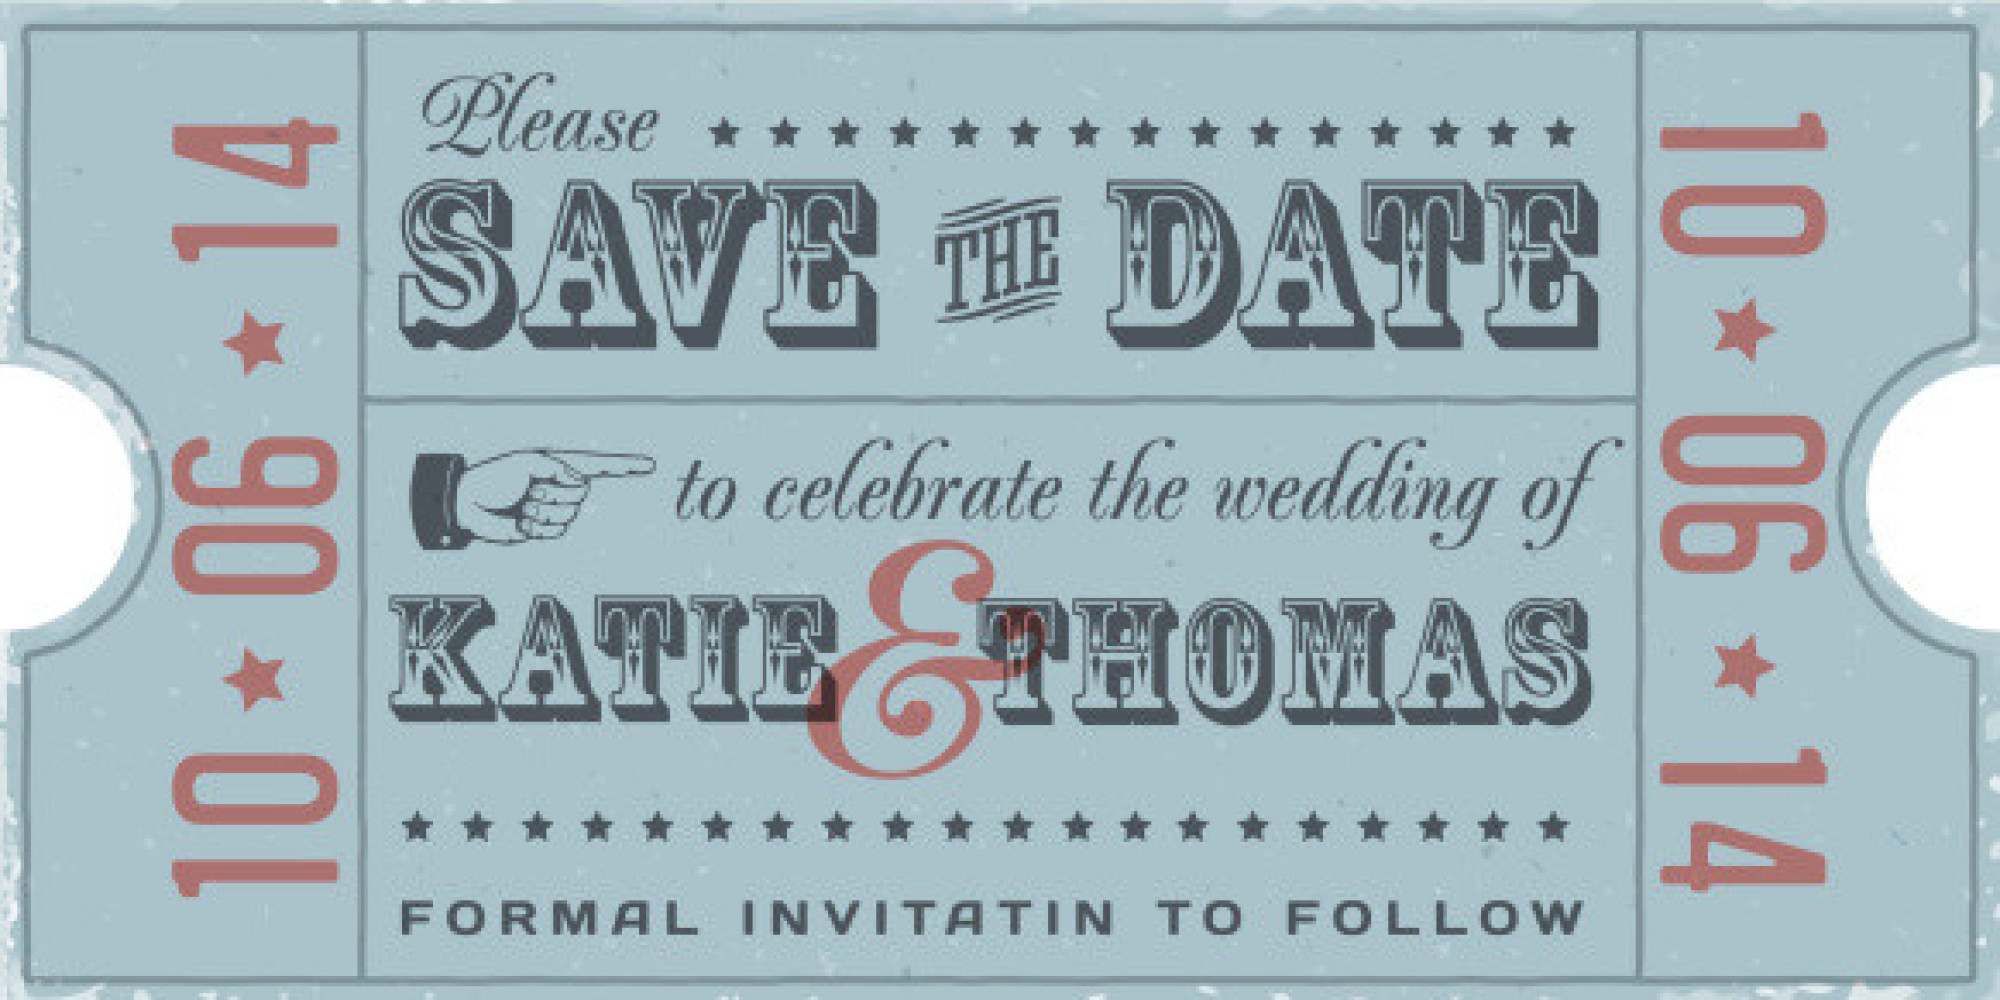 How To Decide If An E-Save-The-Date Is Right For You | HuffPost